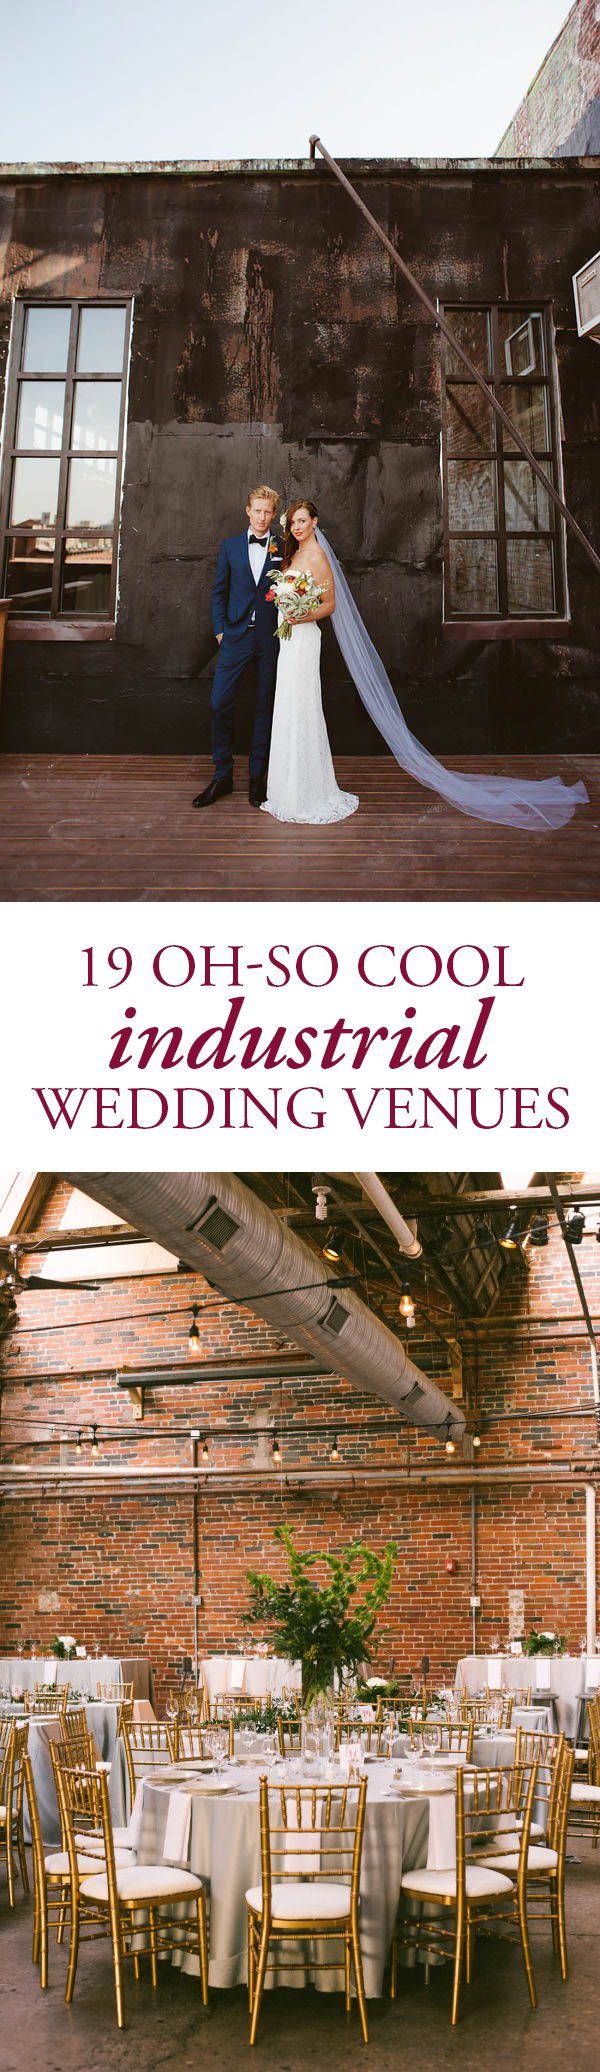 Our Favorite Industrial Wedding Venues Across the Globe | Lauren Fair Photography